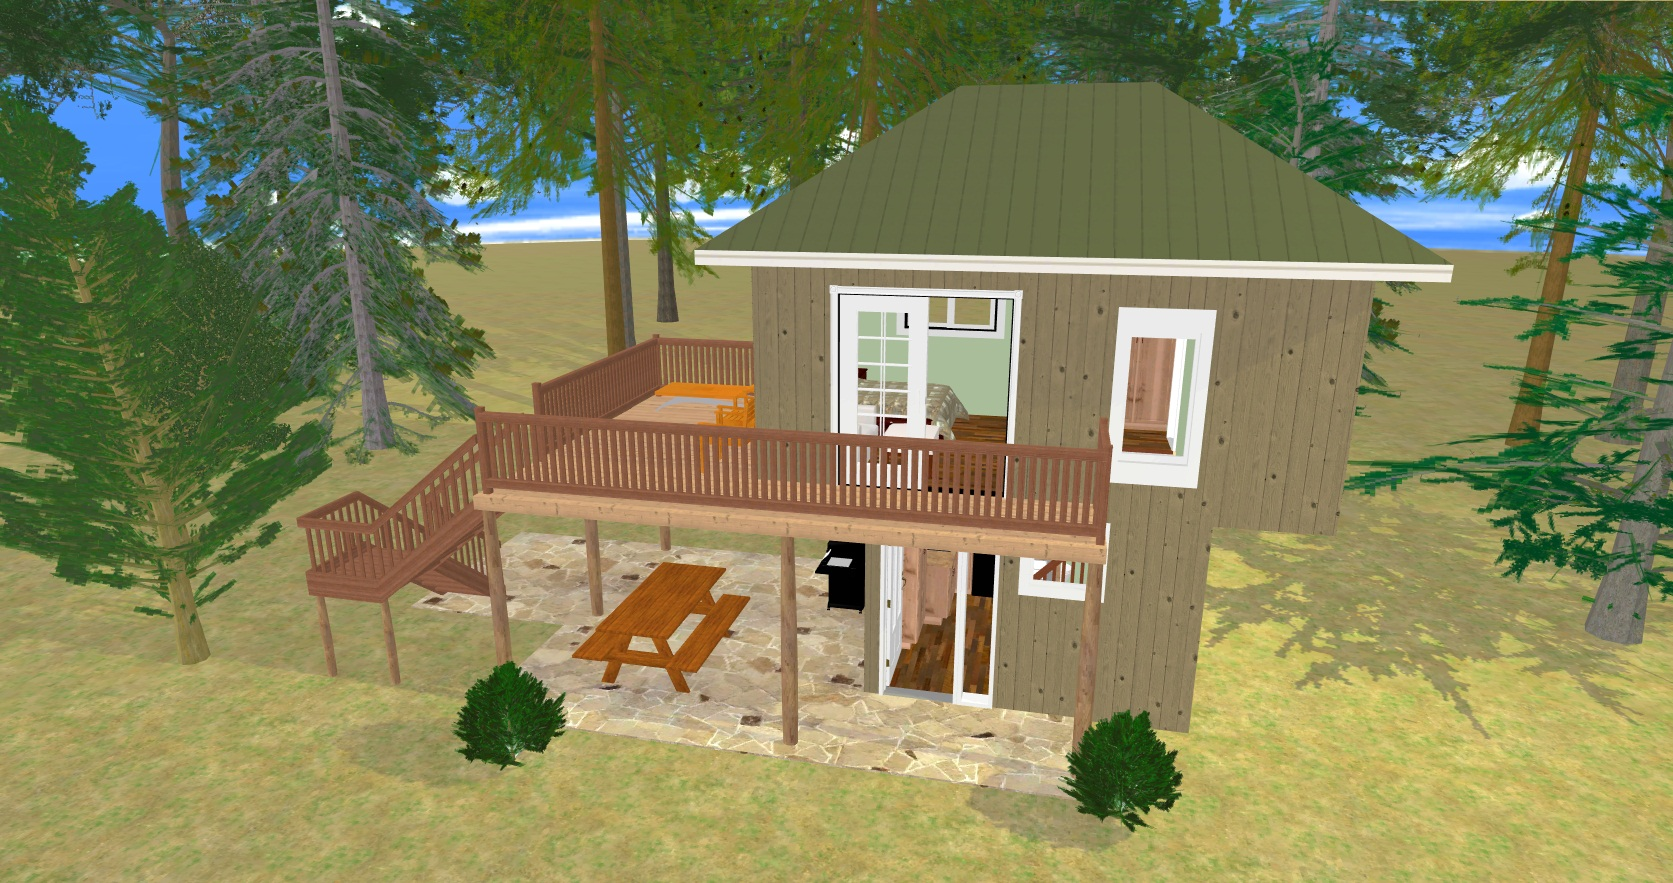 mediterranean house floor plans and designs html with 031230143c6f273b Easy Simple Tree House Plans Tree House Floor Plans 300 Sq Ft on Planta De Casas Modernas likewise A3a03b4054e137e9 Tiny House For Family Of 5 Tiny House With Hot Tub also Be387d04b1d21f16 Cruise Ship Cabins Cruise Ship Cabins To Avoid besides 031230143c6f273b Easy Simple Tree House Plans Tree House Floor Plans 300 Sq Ft in addition 54fdea965f9f7d27 House Plans Designs Caribbean Styles Modern Caribbean House Plans.